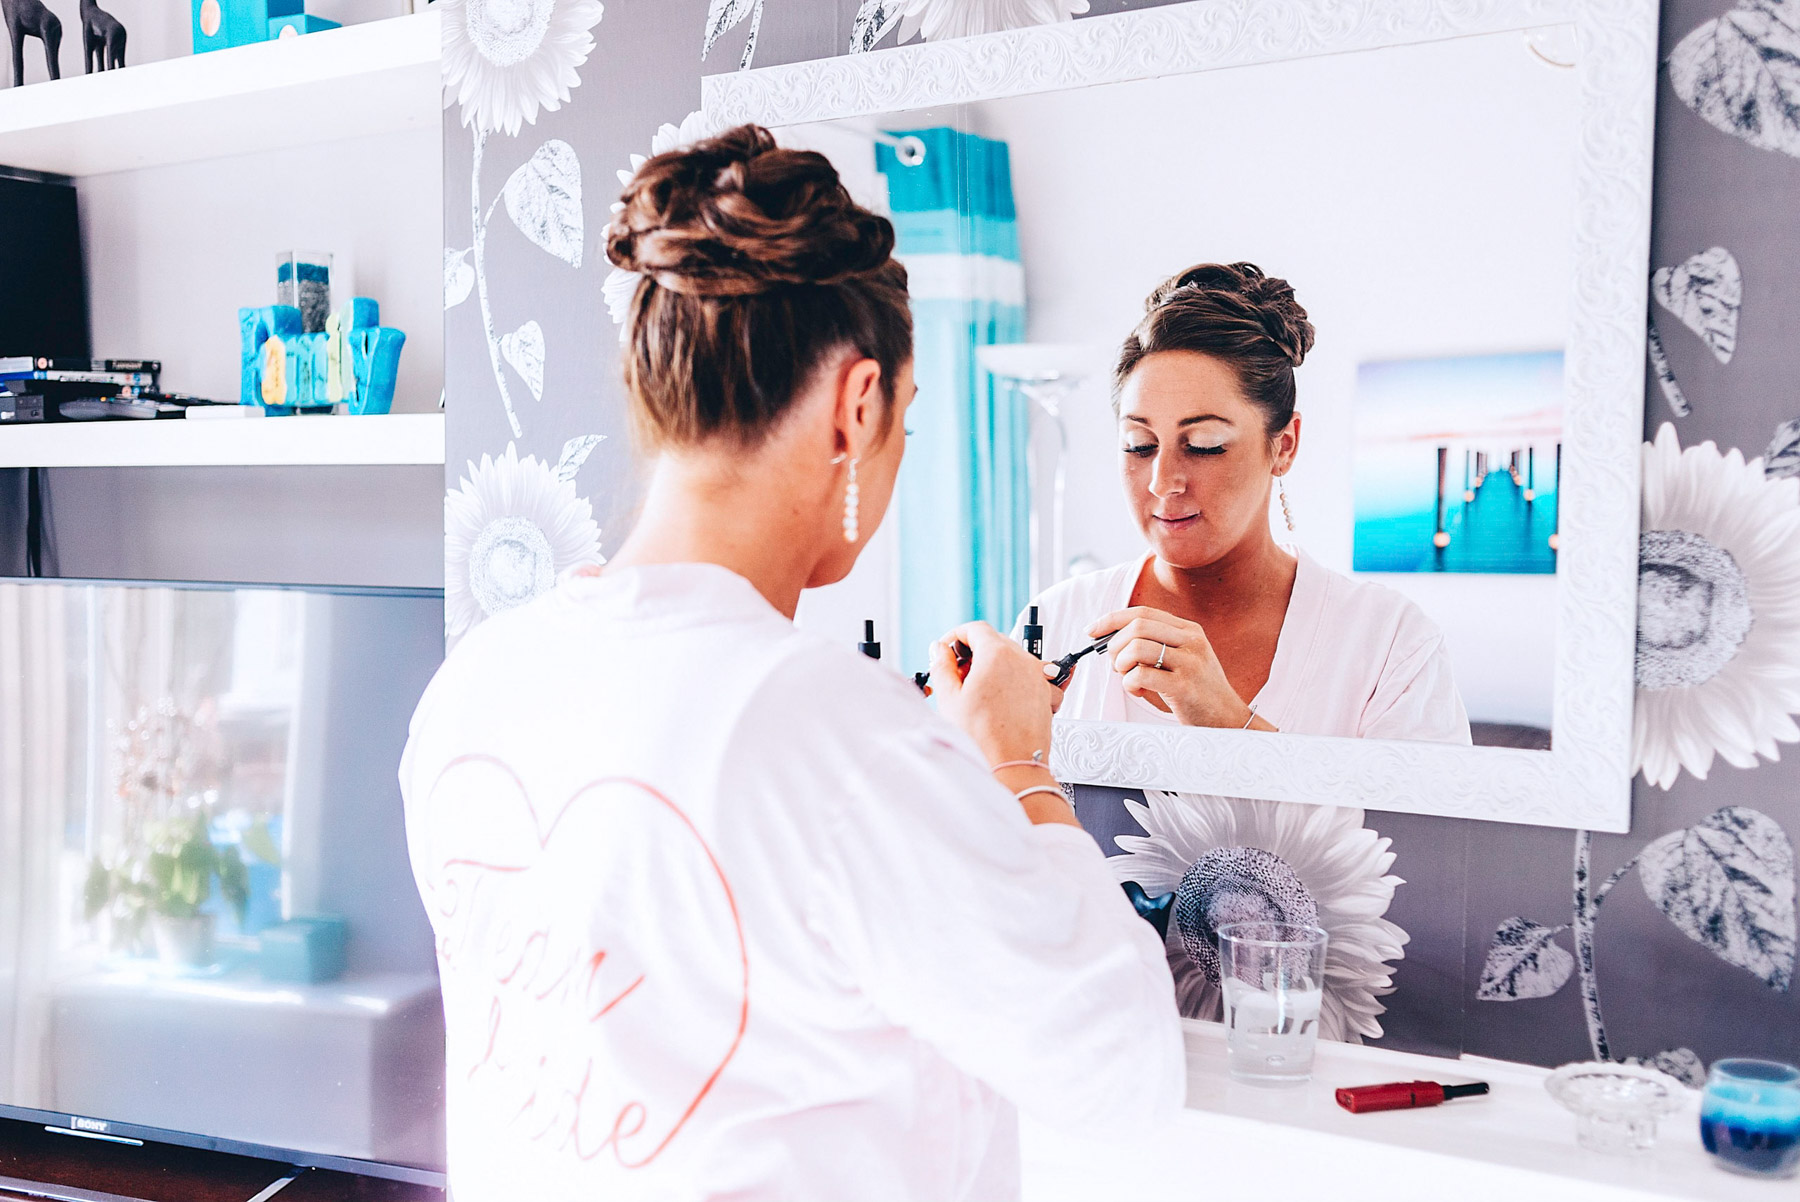 Bridesmaid looks at herself in the mirror